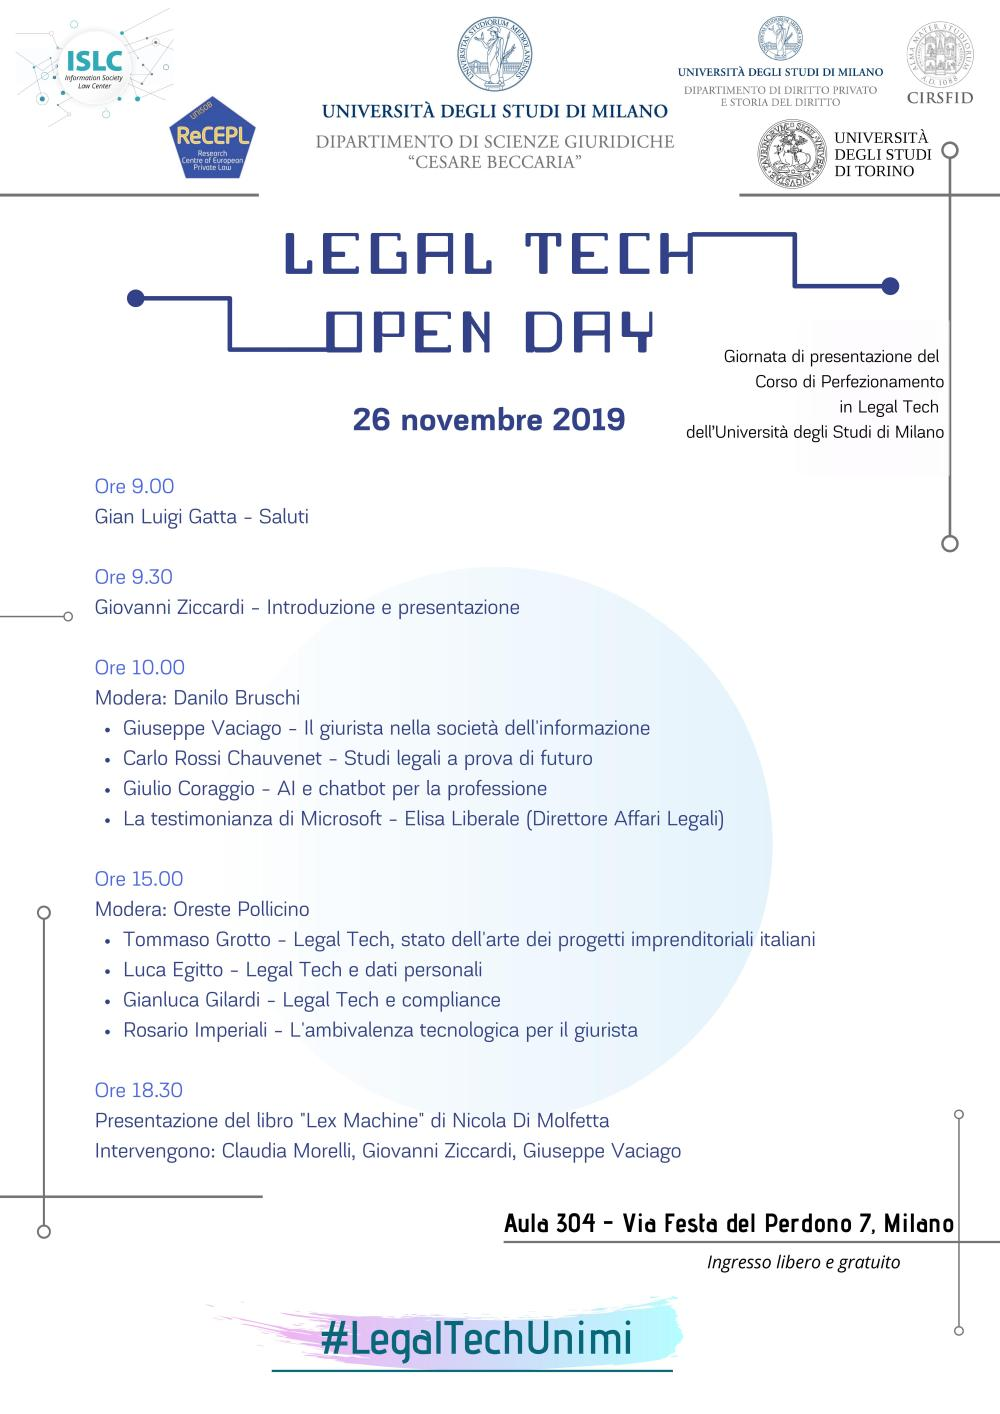 2. Legal Tech Open Day